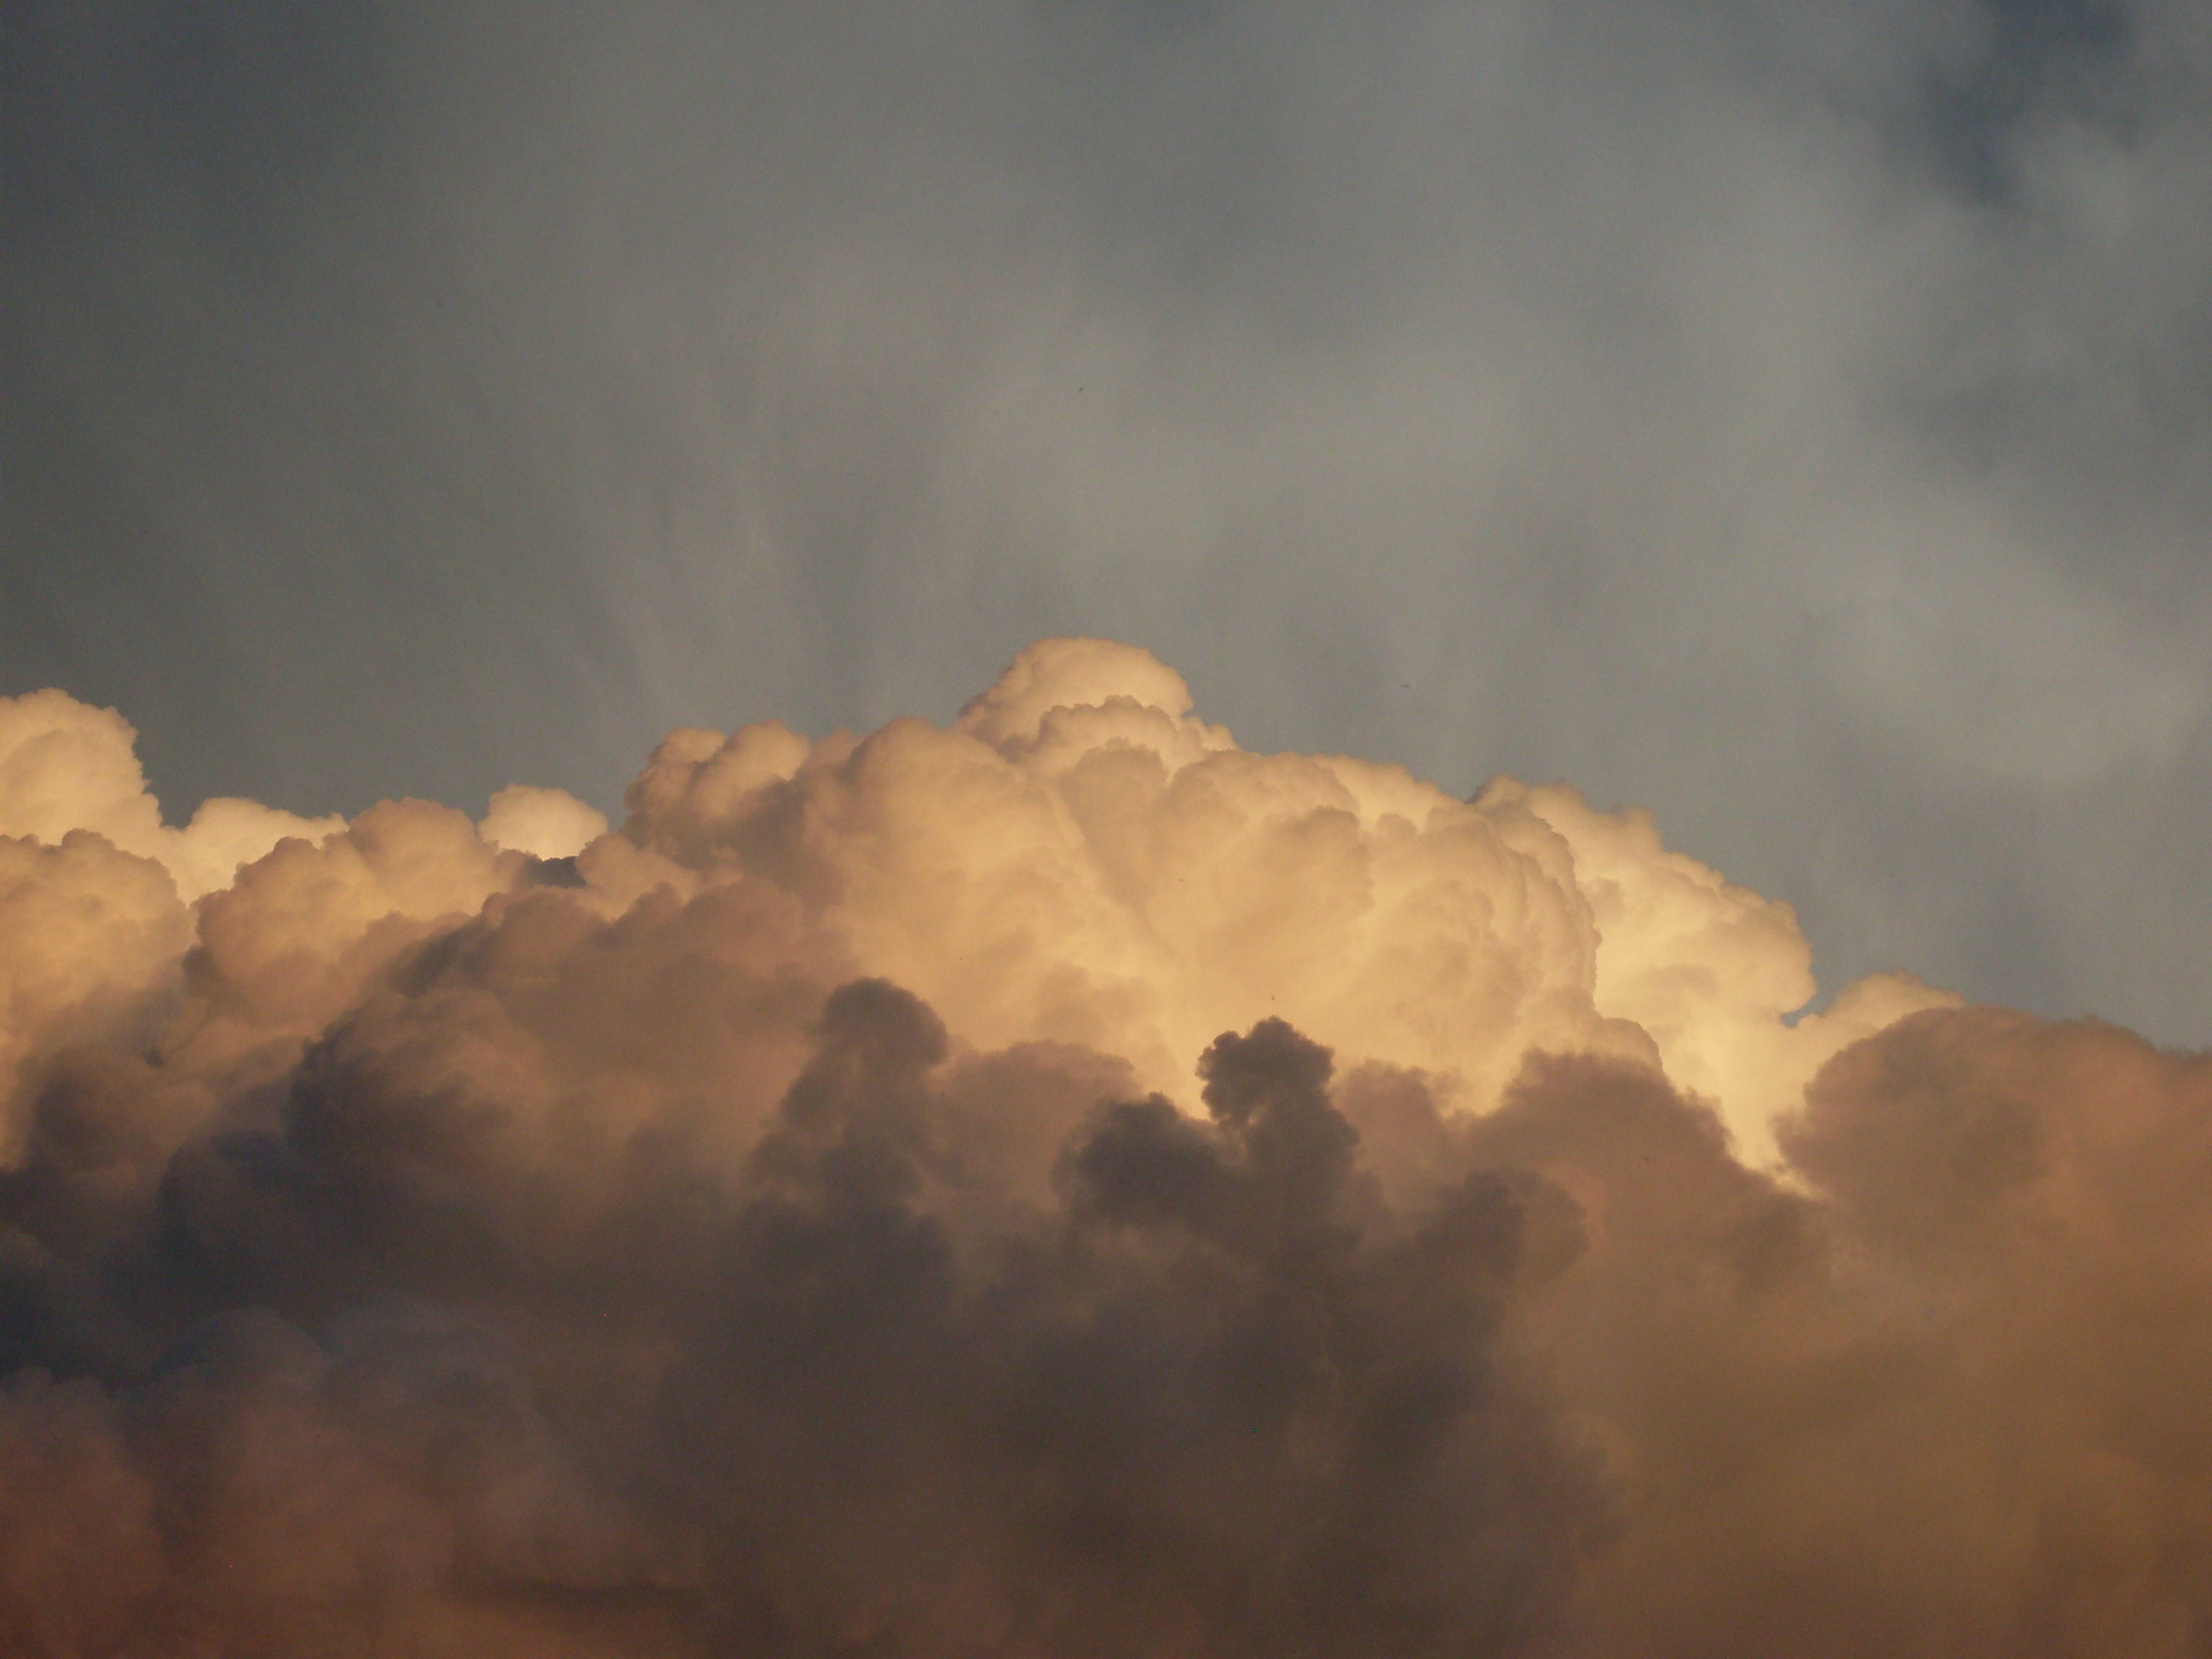 Evening Clouds - Image 4